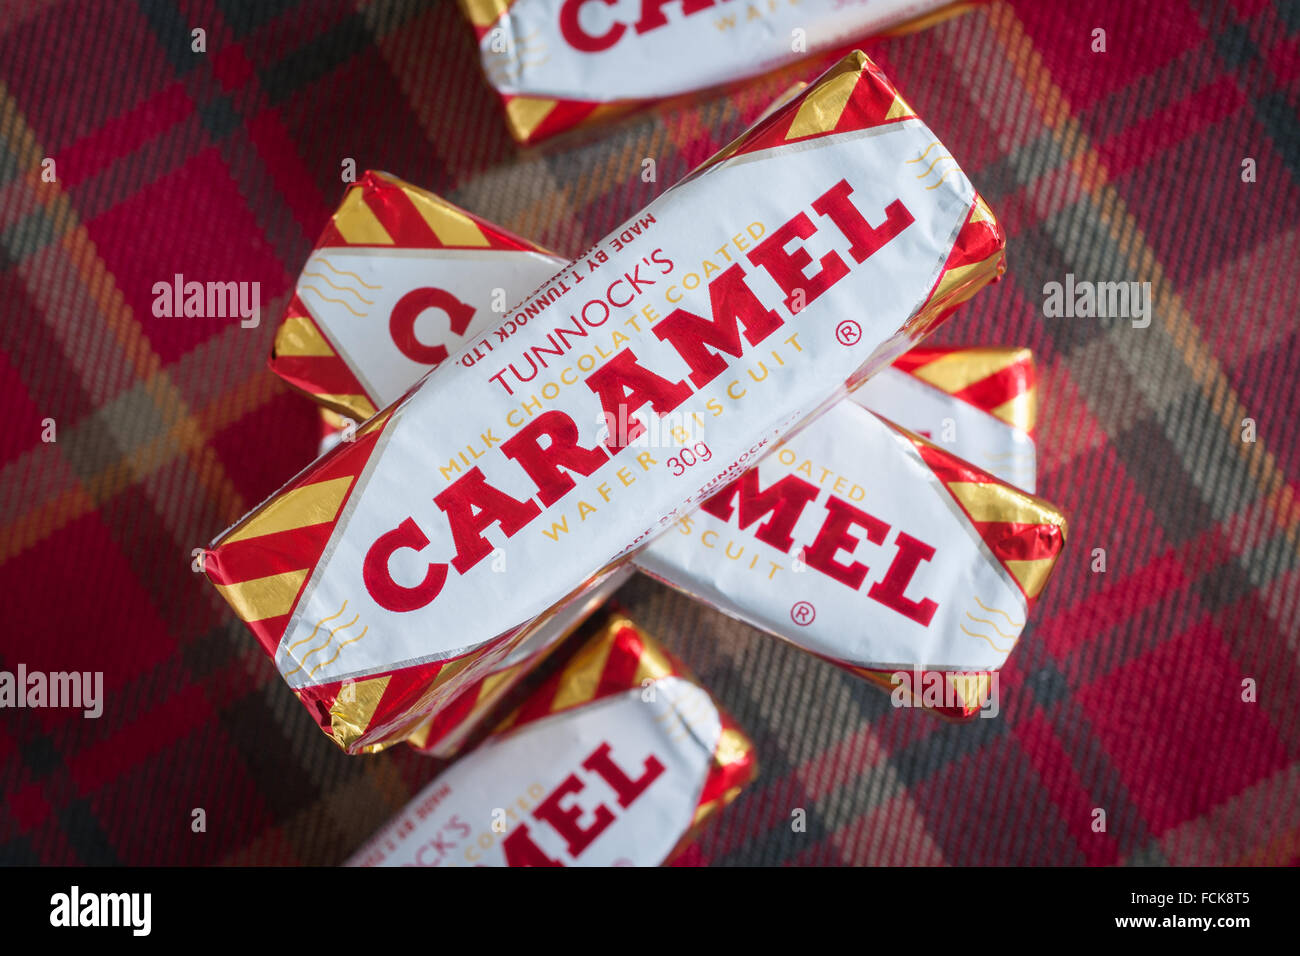 Tunnock's Caramel Wafers a chocolate covered caramel biscuit produced by Tunnocks Ltd in Uddingston Scotland - Stock Image